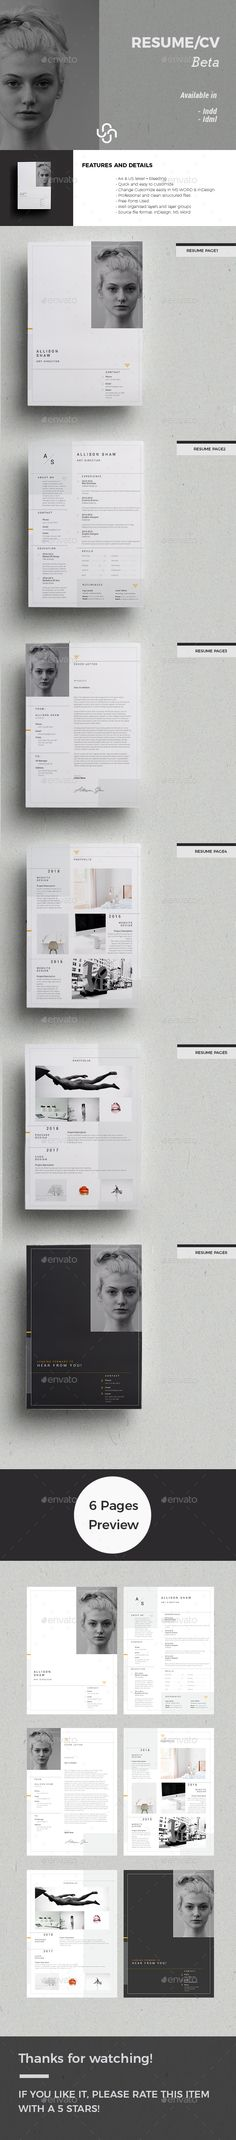 Beta Resume Template 3014 best Resume Templates